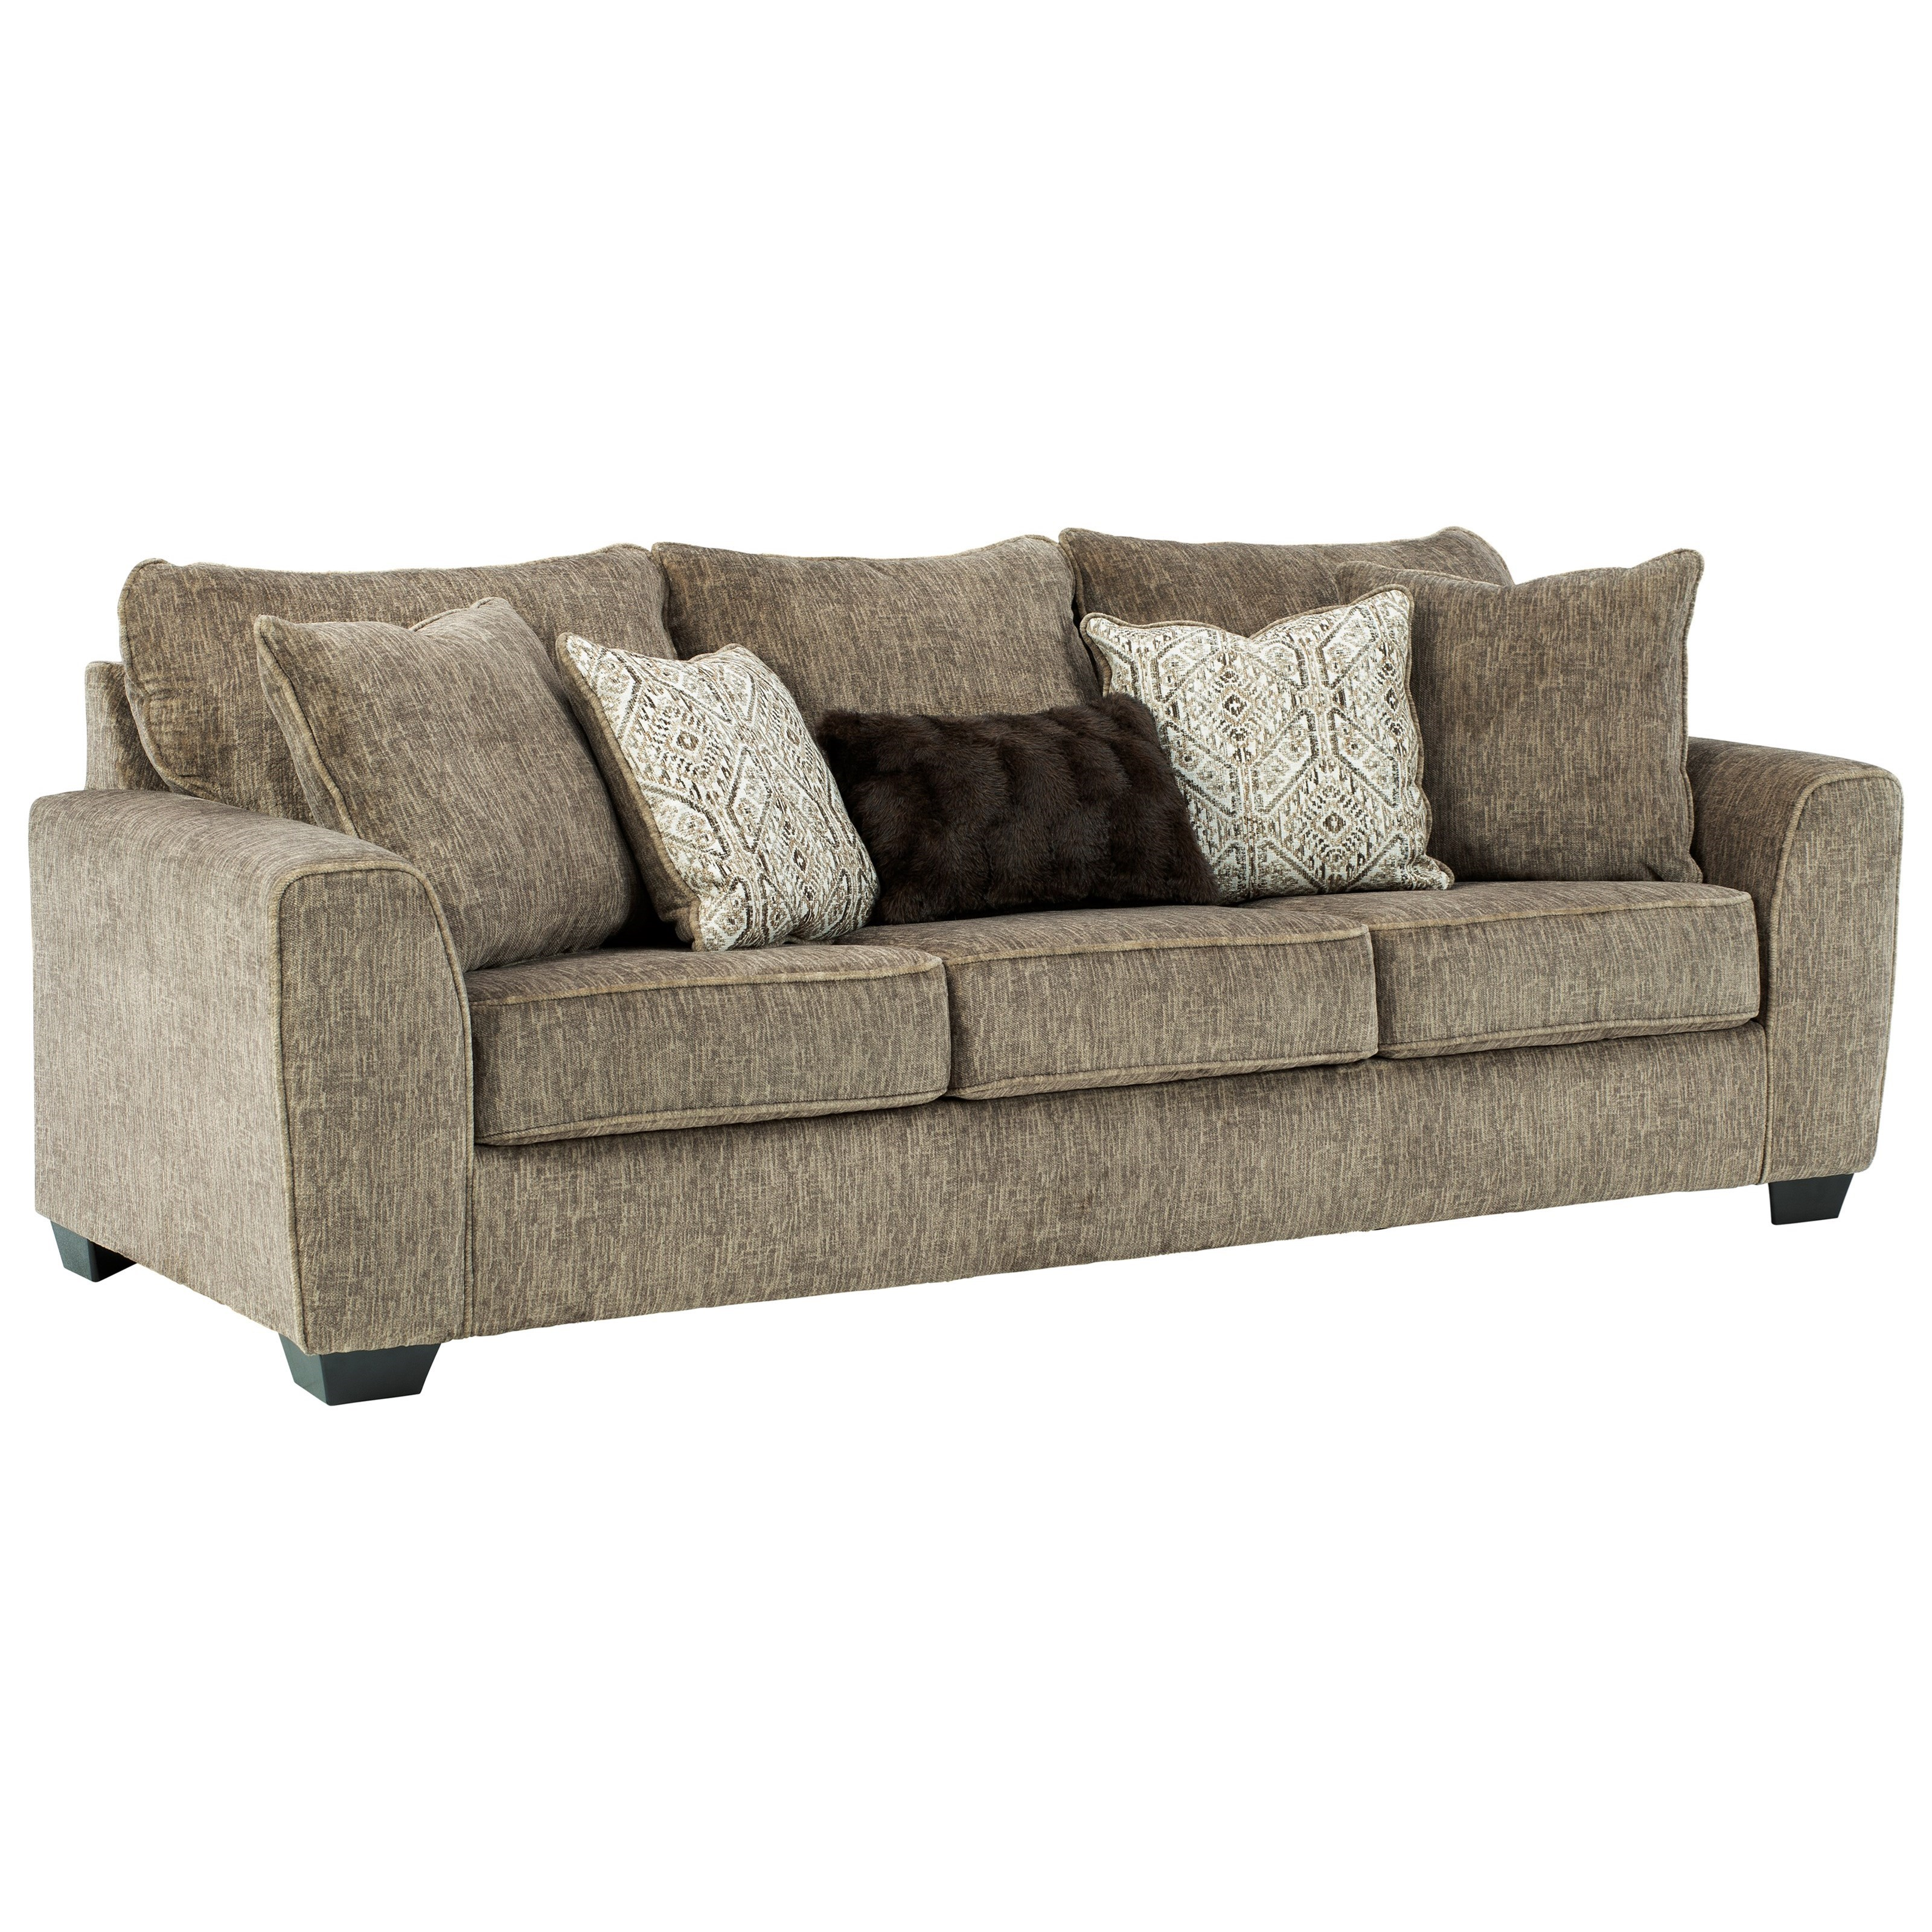 Olin Sofa by Benchcraft at Beck's Furniture